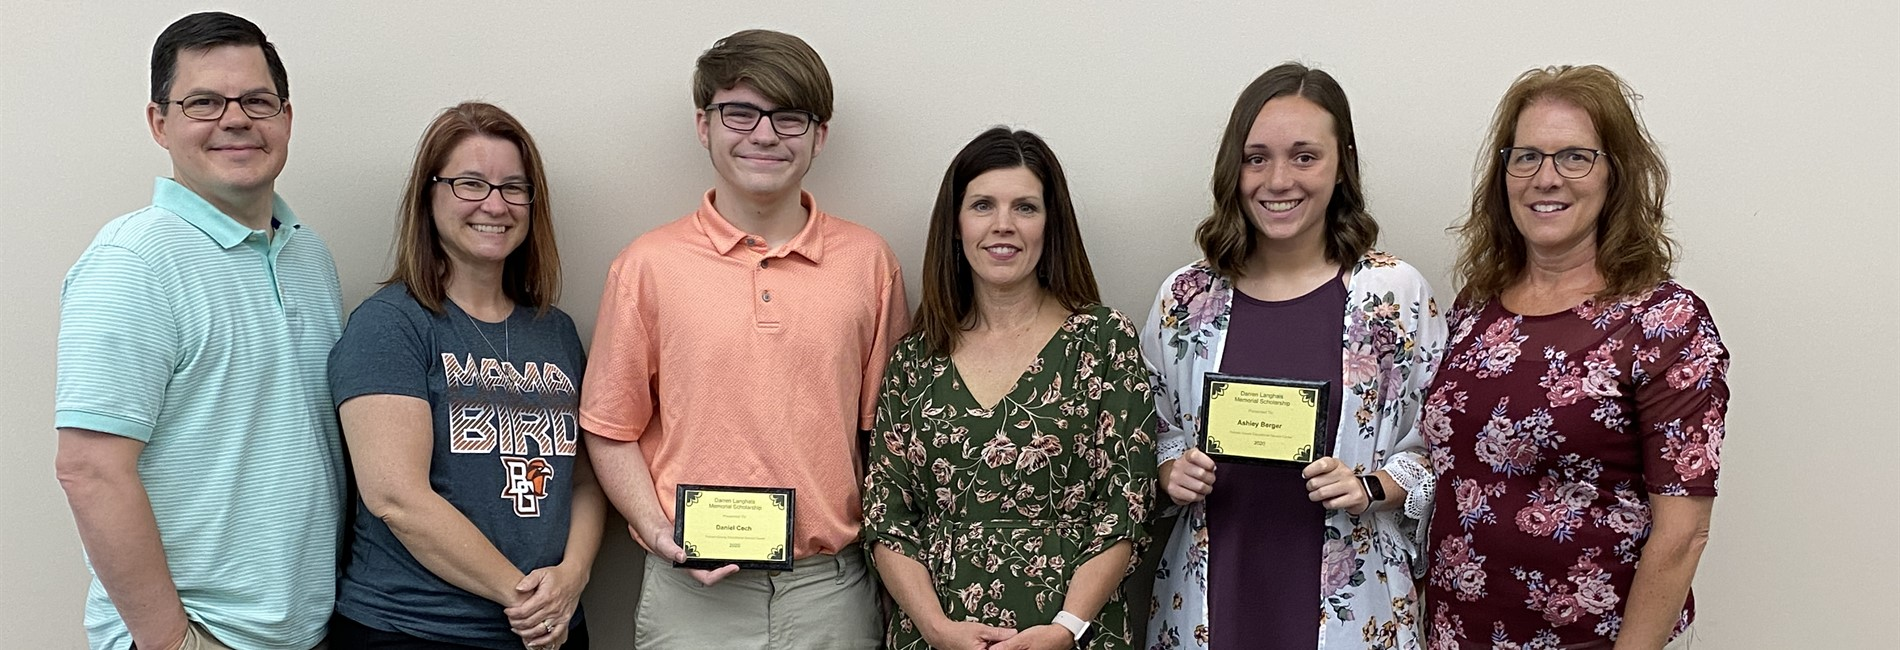 Darren Langhals Memorial Scholarship recipients